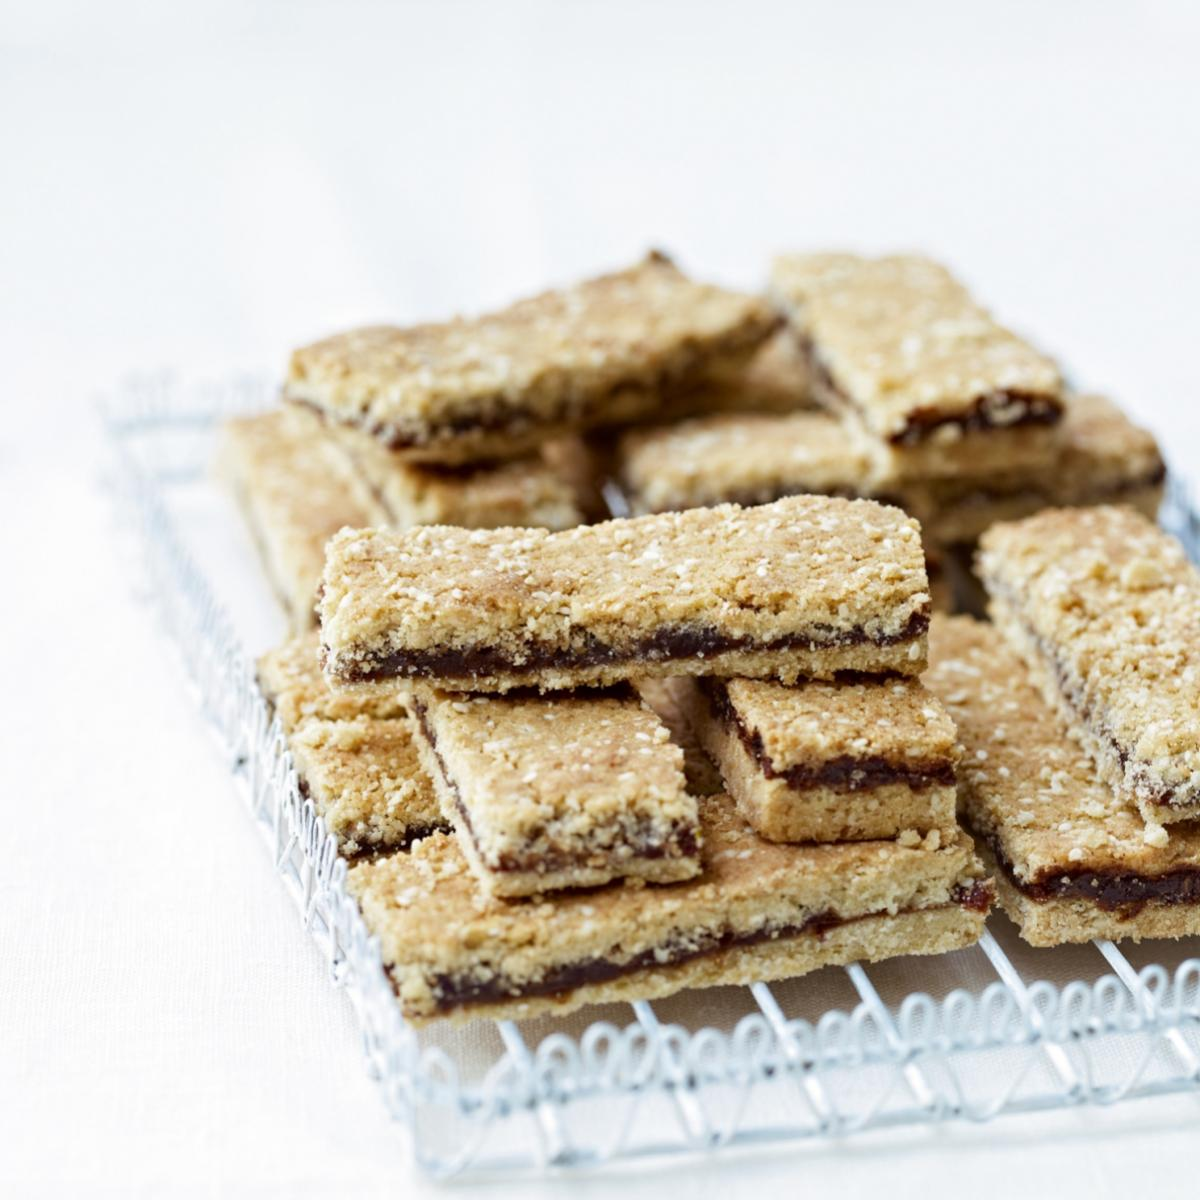 A picture of Delia's Spiced Date and Sesame Crunchies recipe